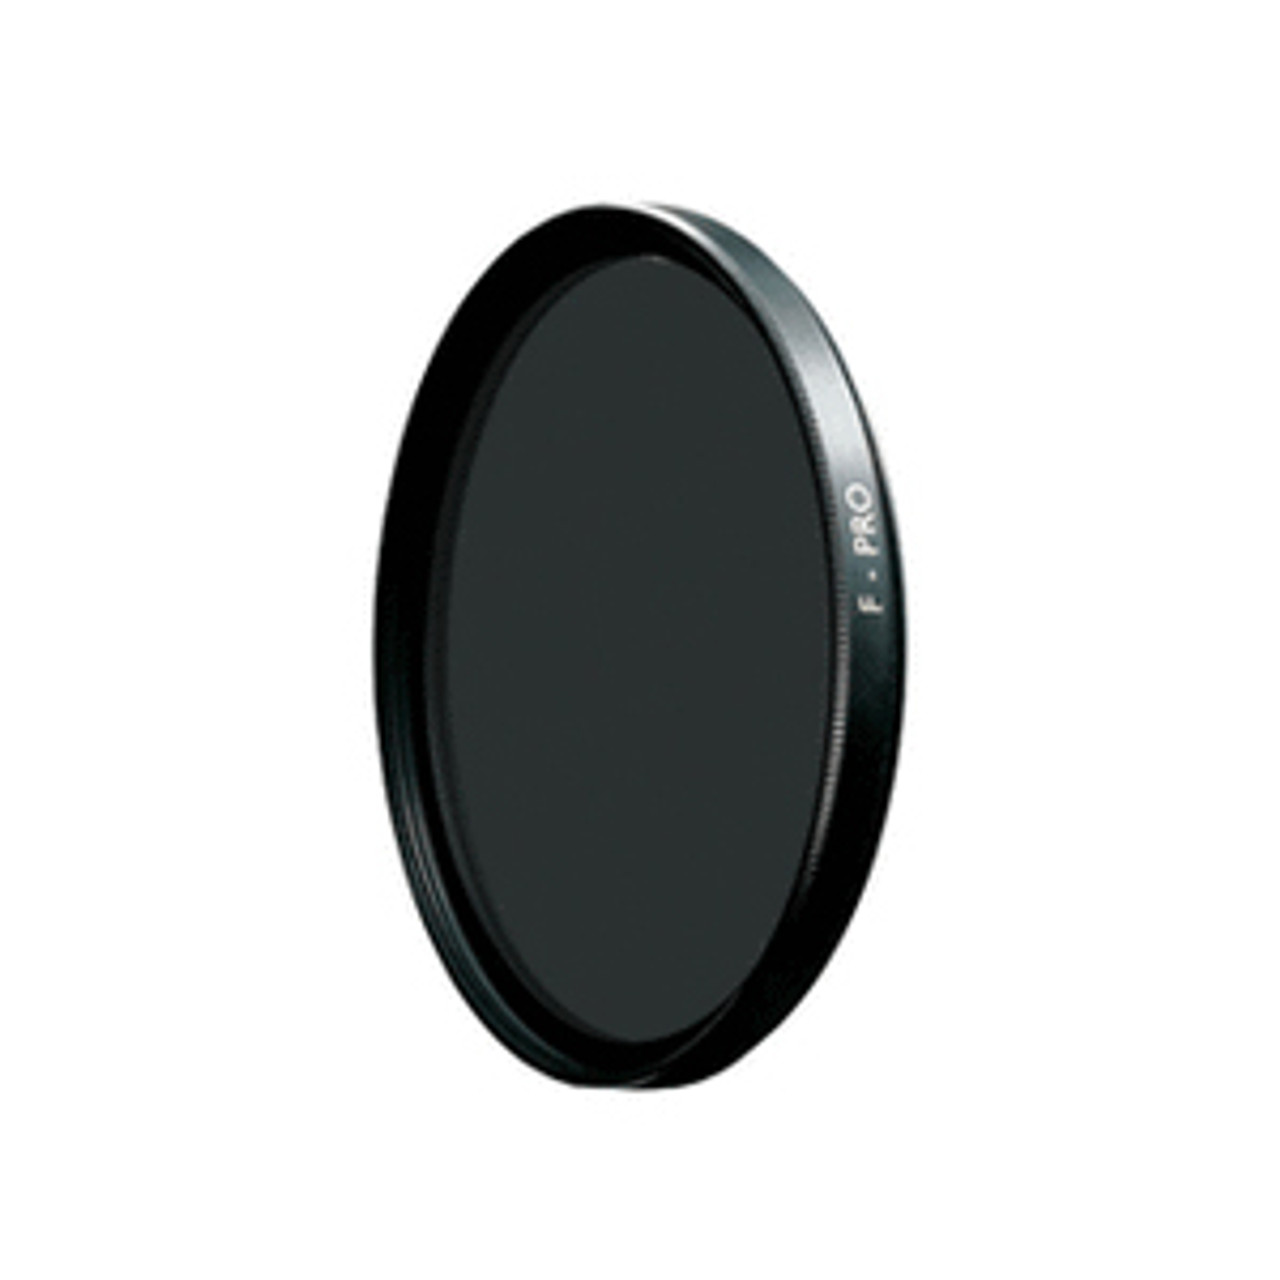 B+W 49mm MRC Circular Polarizing Filter